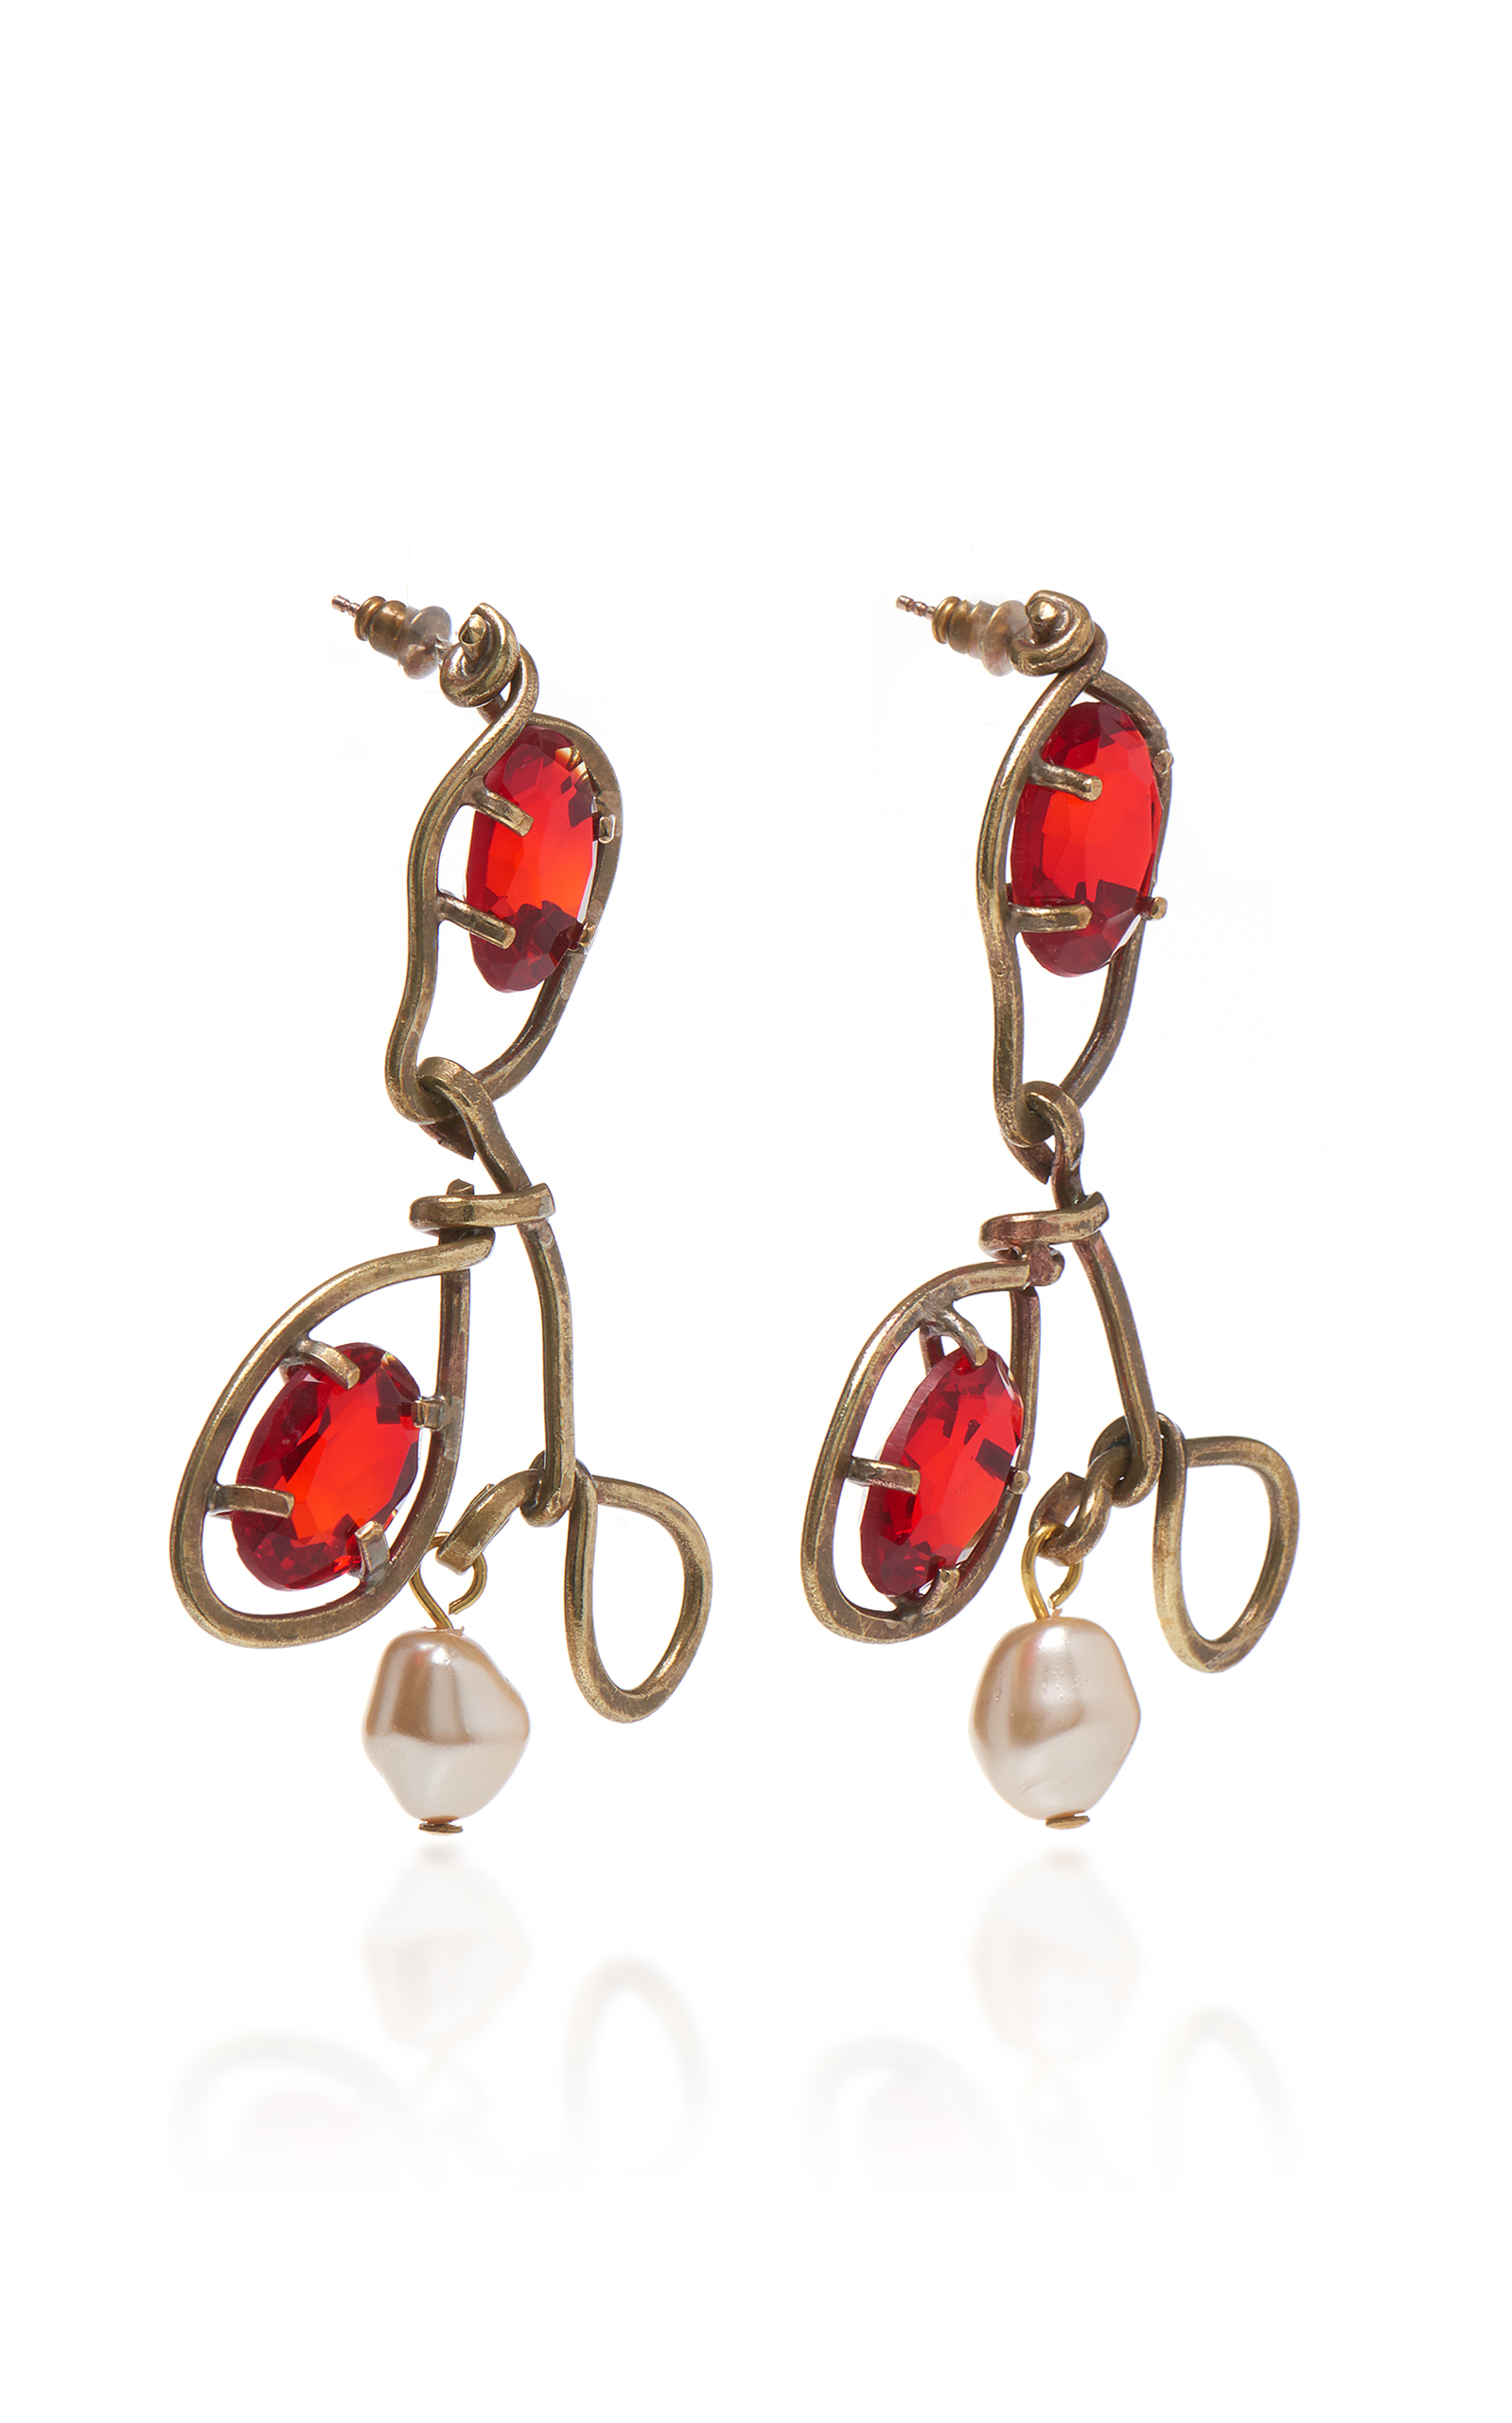 Earrings with Glass and Pearls Marni 8bpEdM0lD